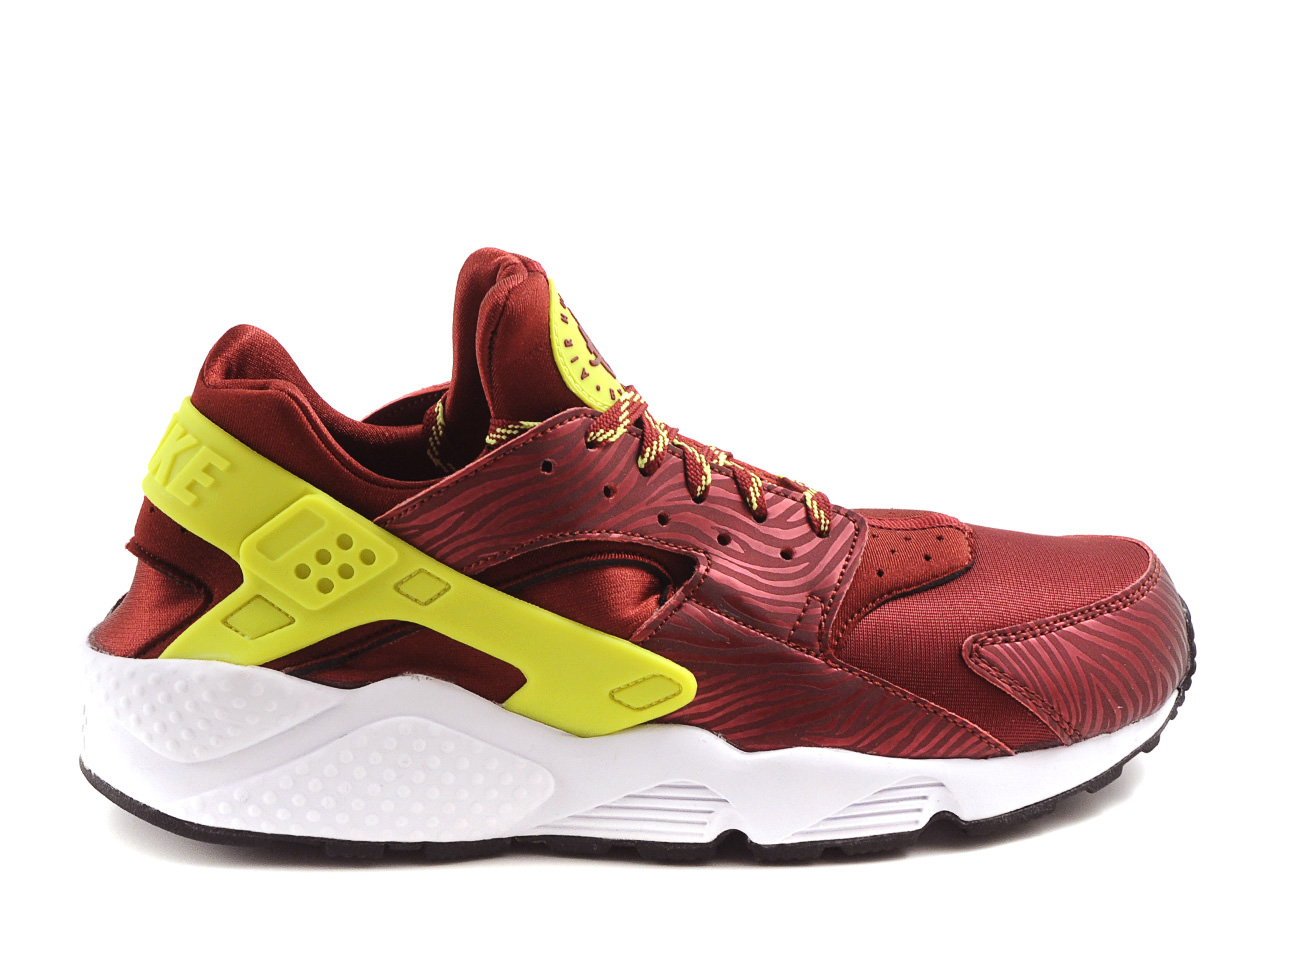 nike air huarache team red volt in red for men lyst. Black Bedroom Furniture Sets. Home Design Ideas